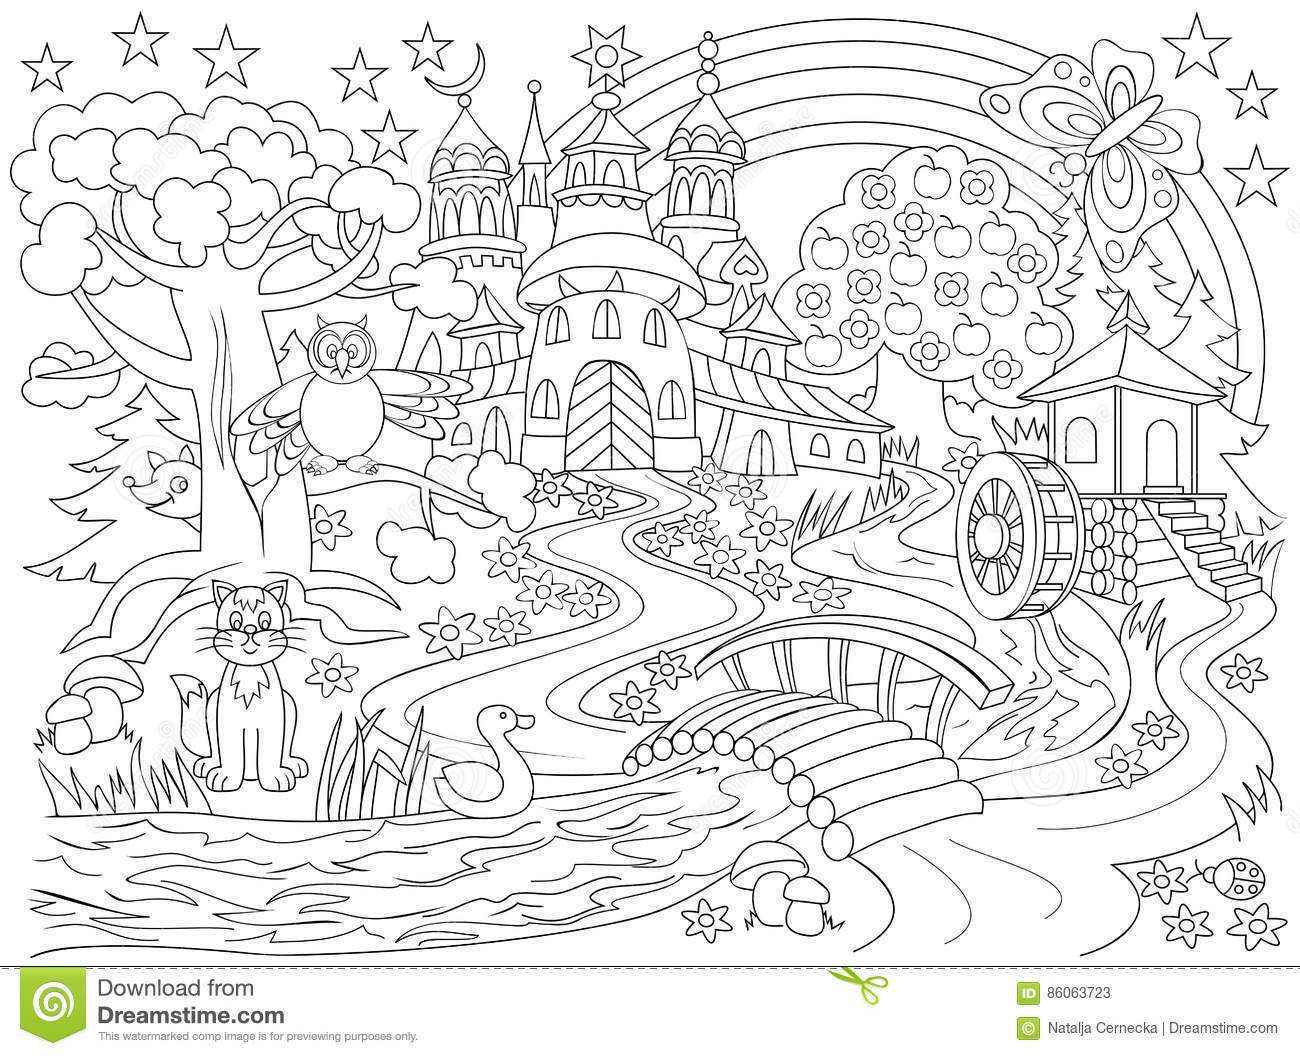 Black And White Drawing Of Fairyland Country Me Val Castle In The Magic Forest For Coloring